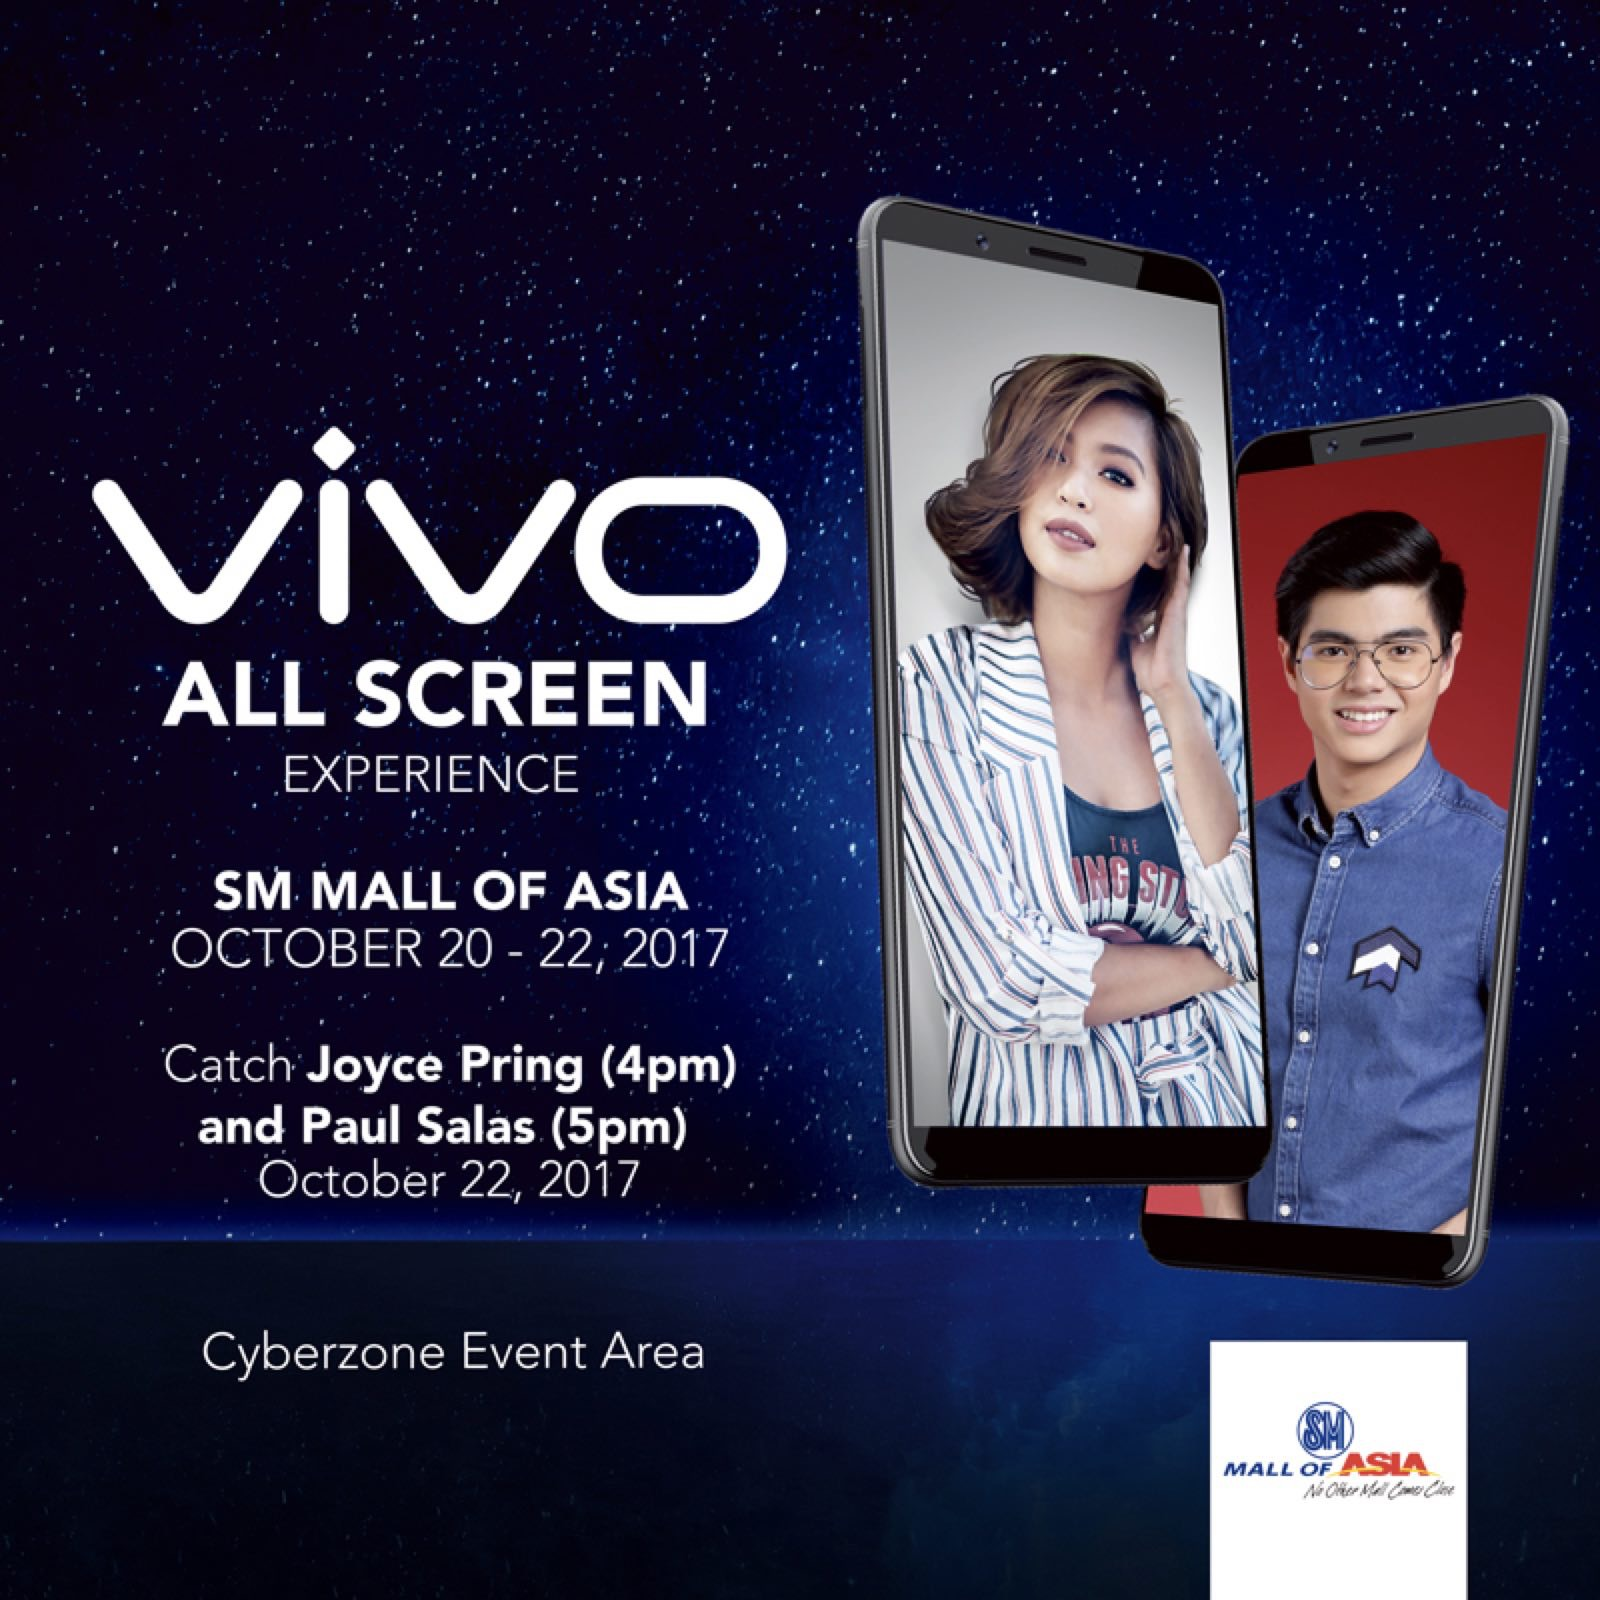 Joyce Pring and Paul Salas to grace the Vivo V7+ All Screen Experience SM Mall Tour at the Mall of Asia on October 20 to 22